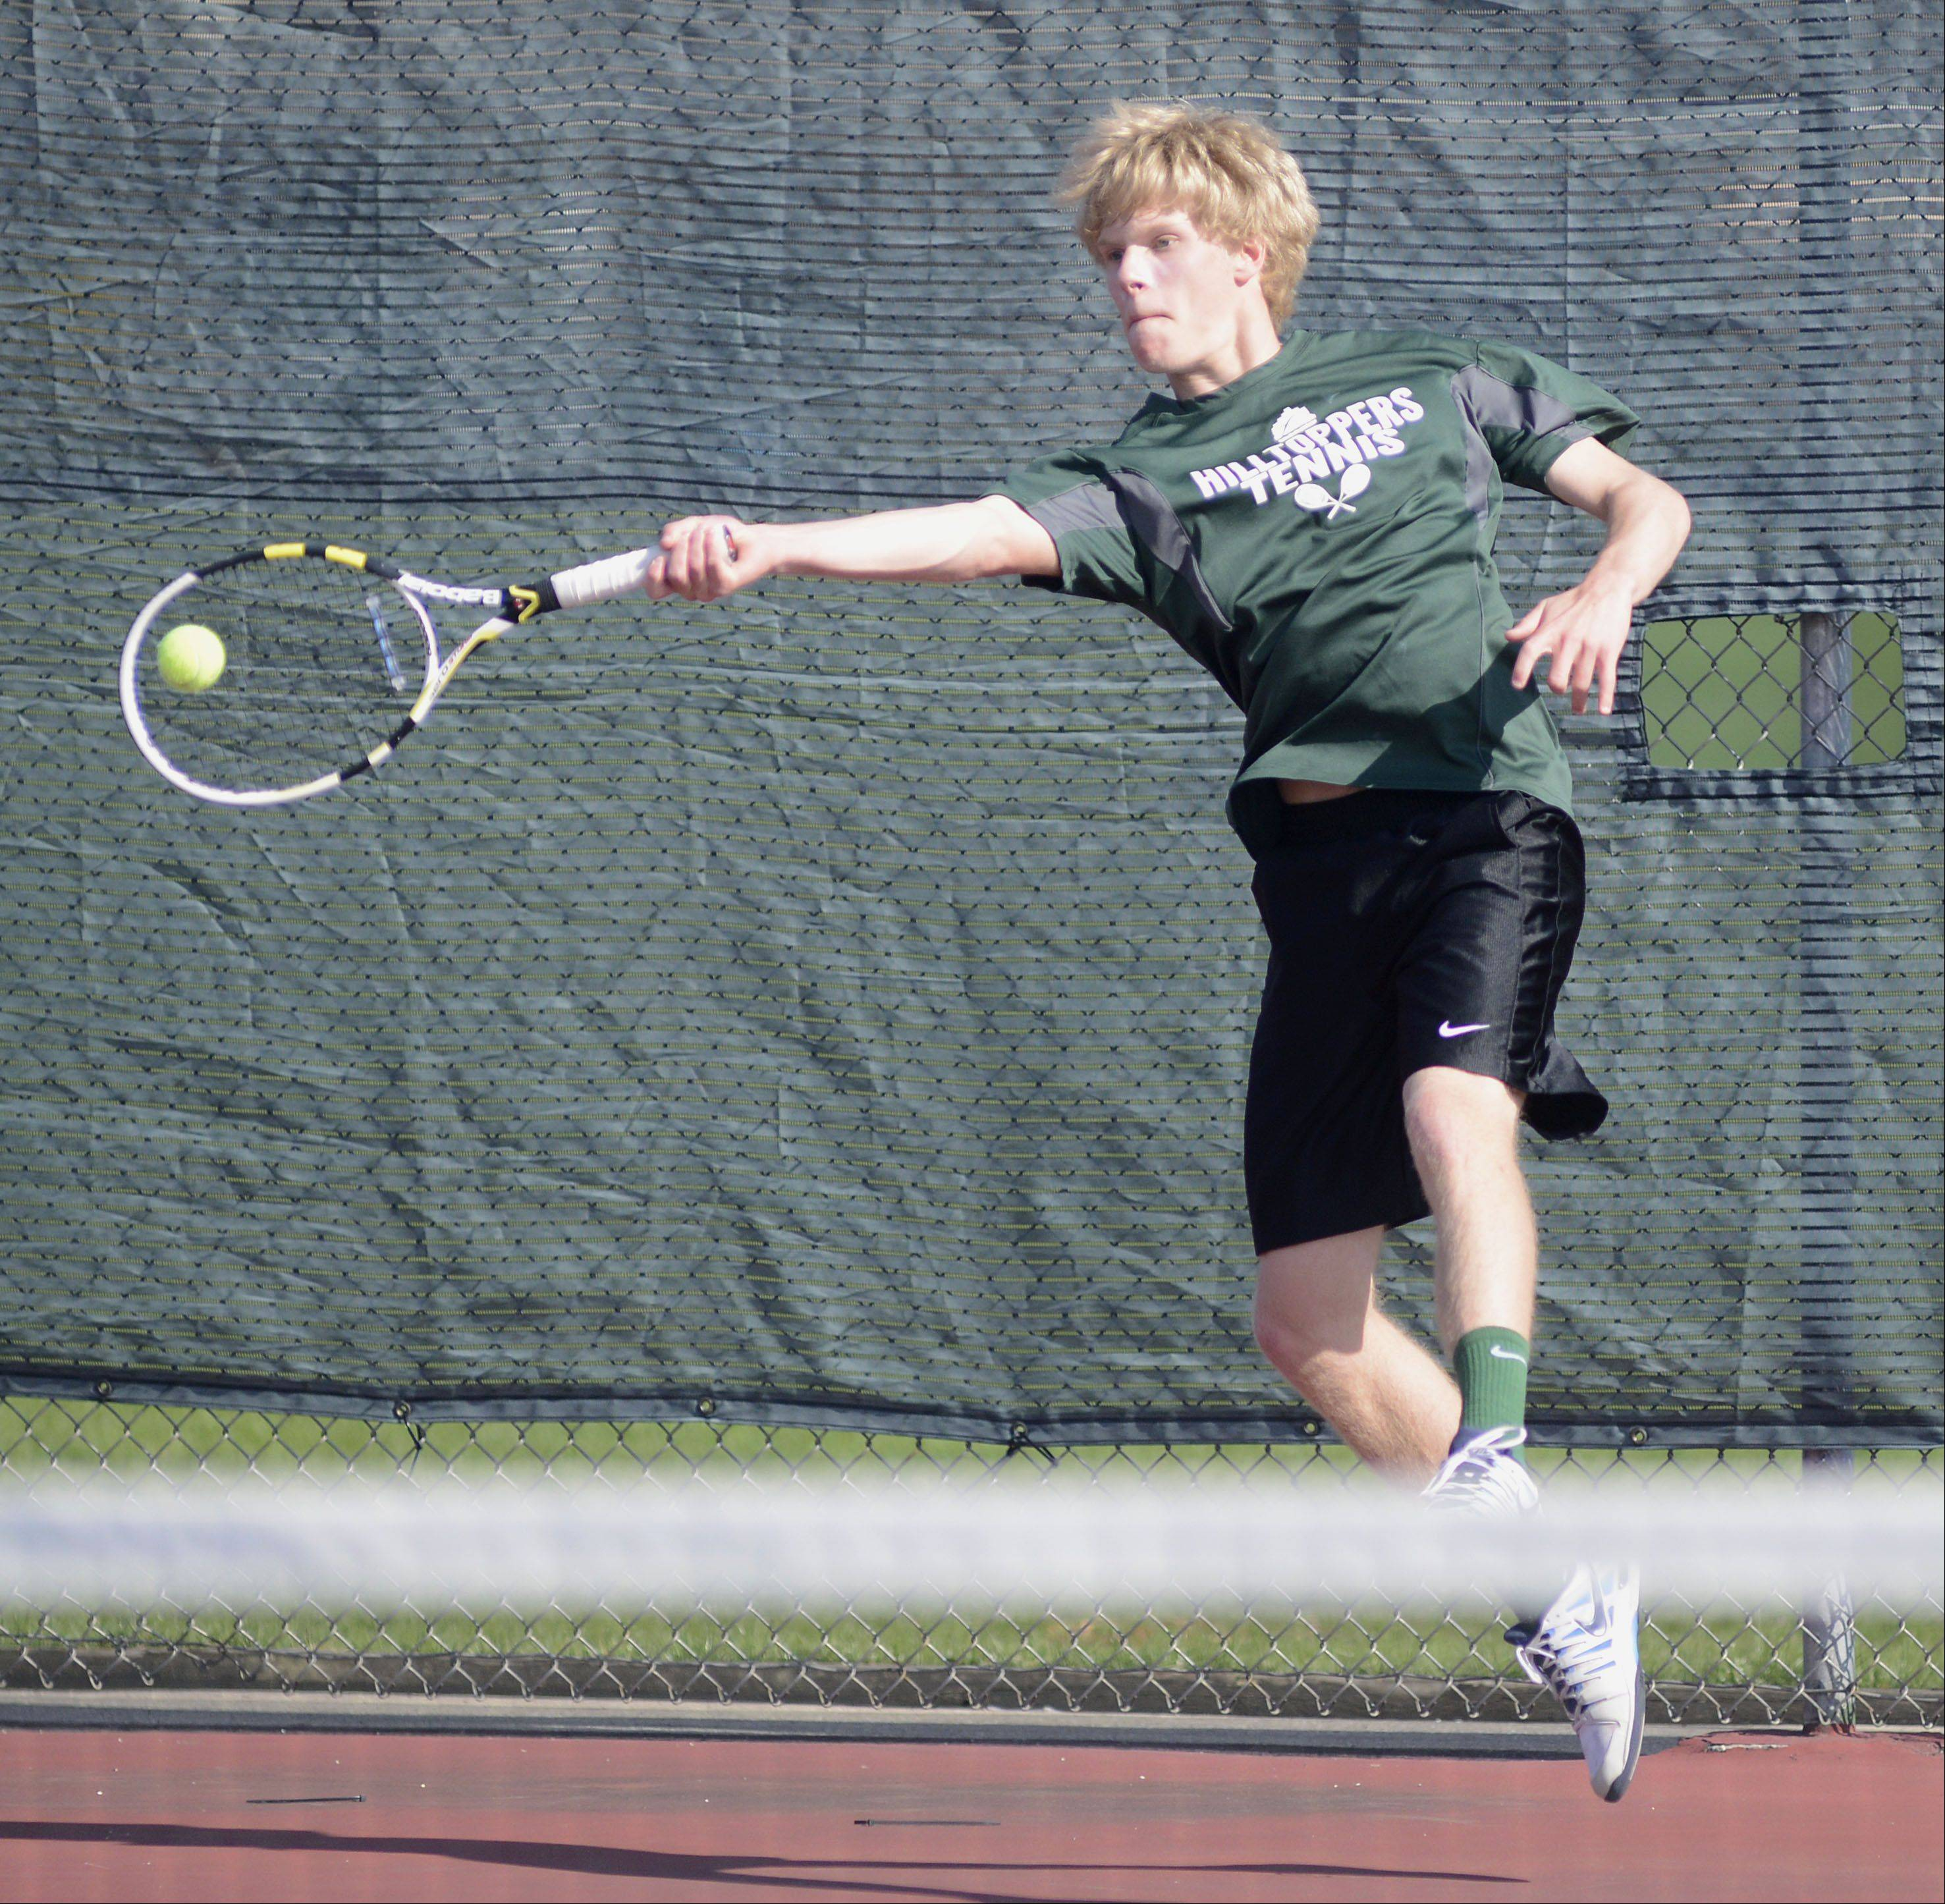 Glenbard West's Kenny Reick leaps to return a hit to St. Charles East in the first doubles match at West Aurora High School on Saturday, April 27.